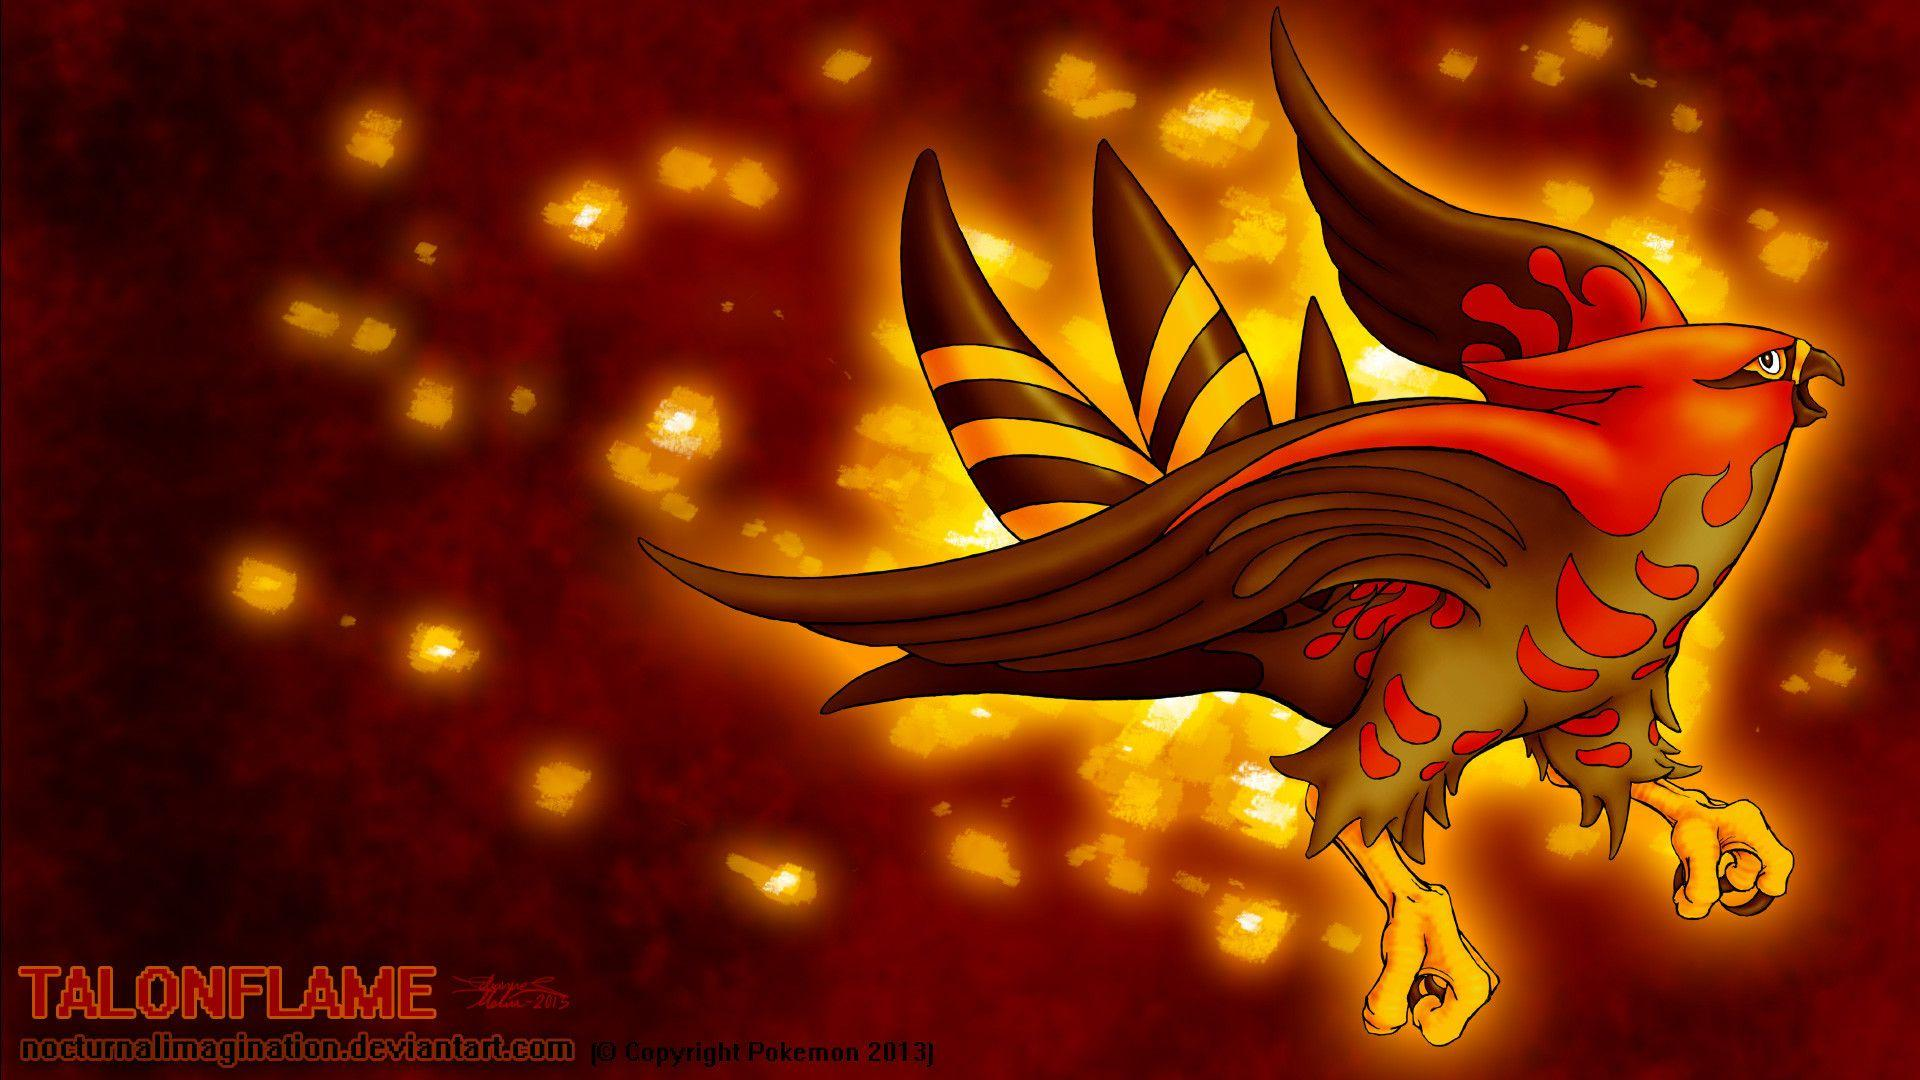 Talonflame Wallpapers